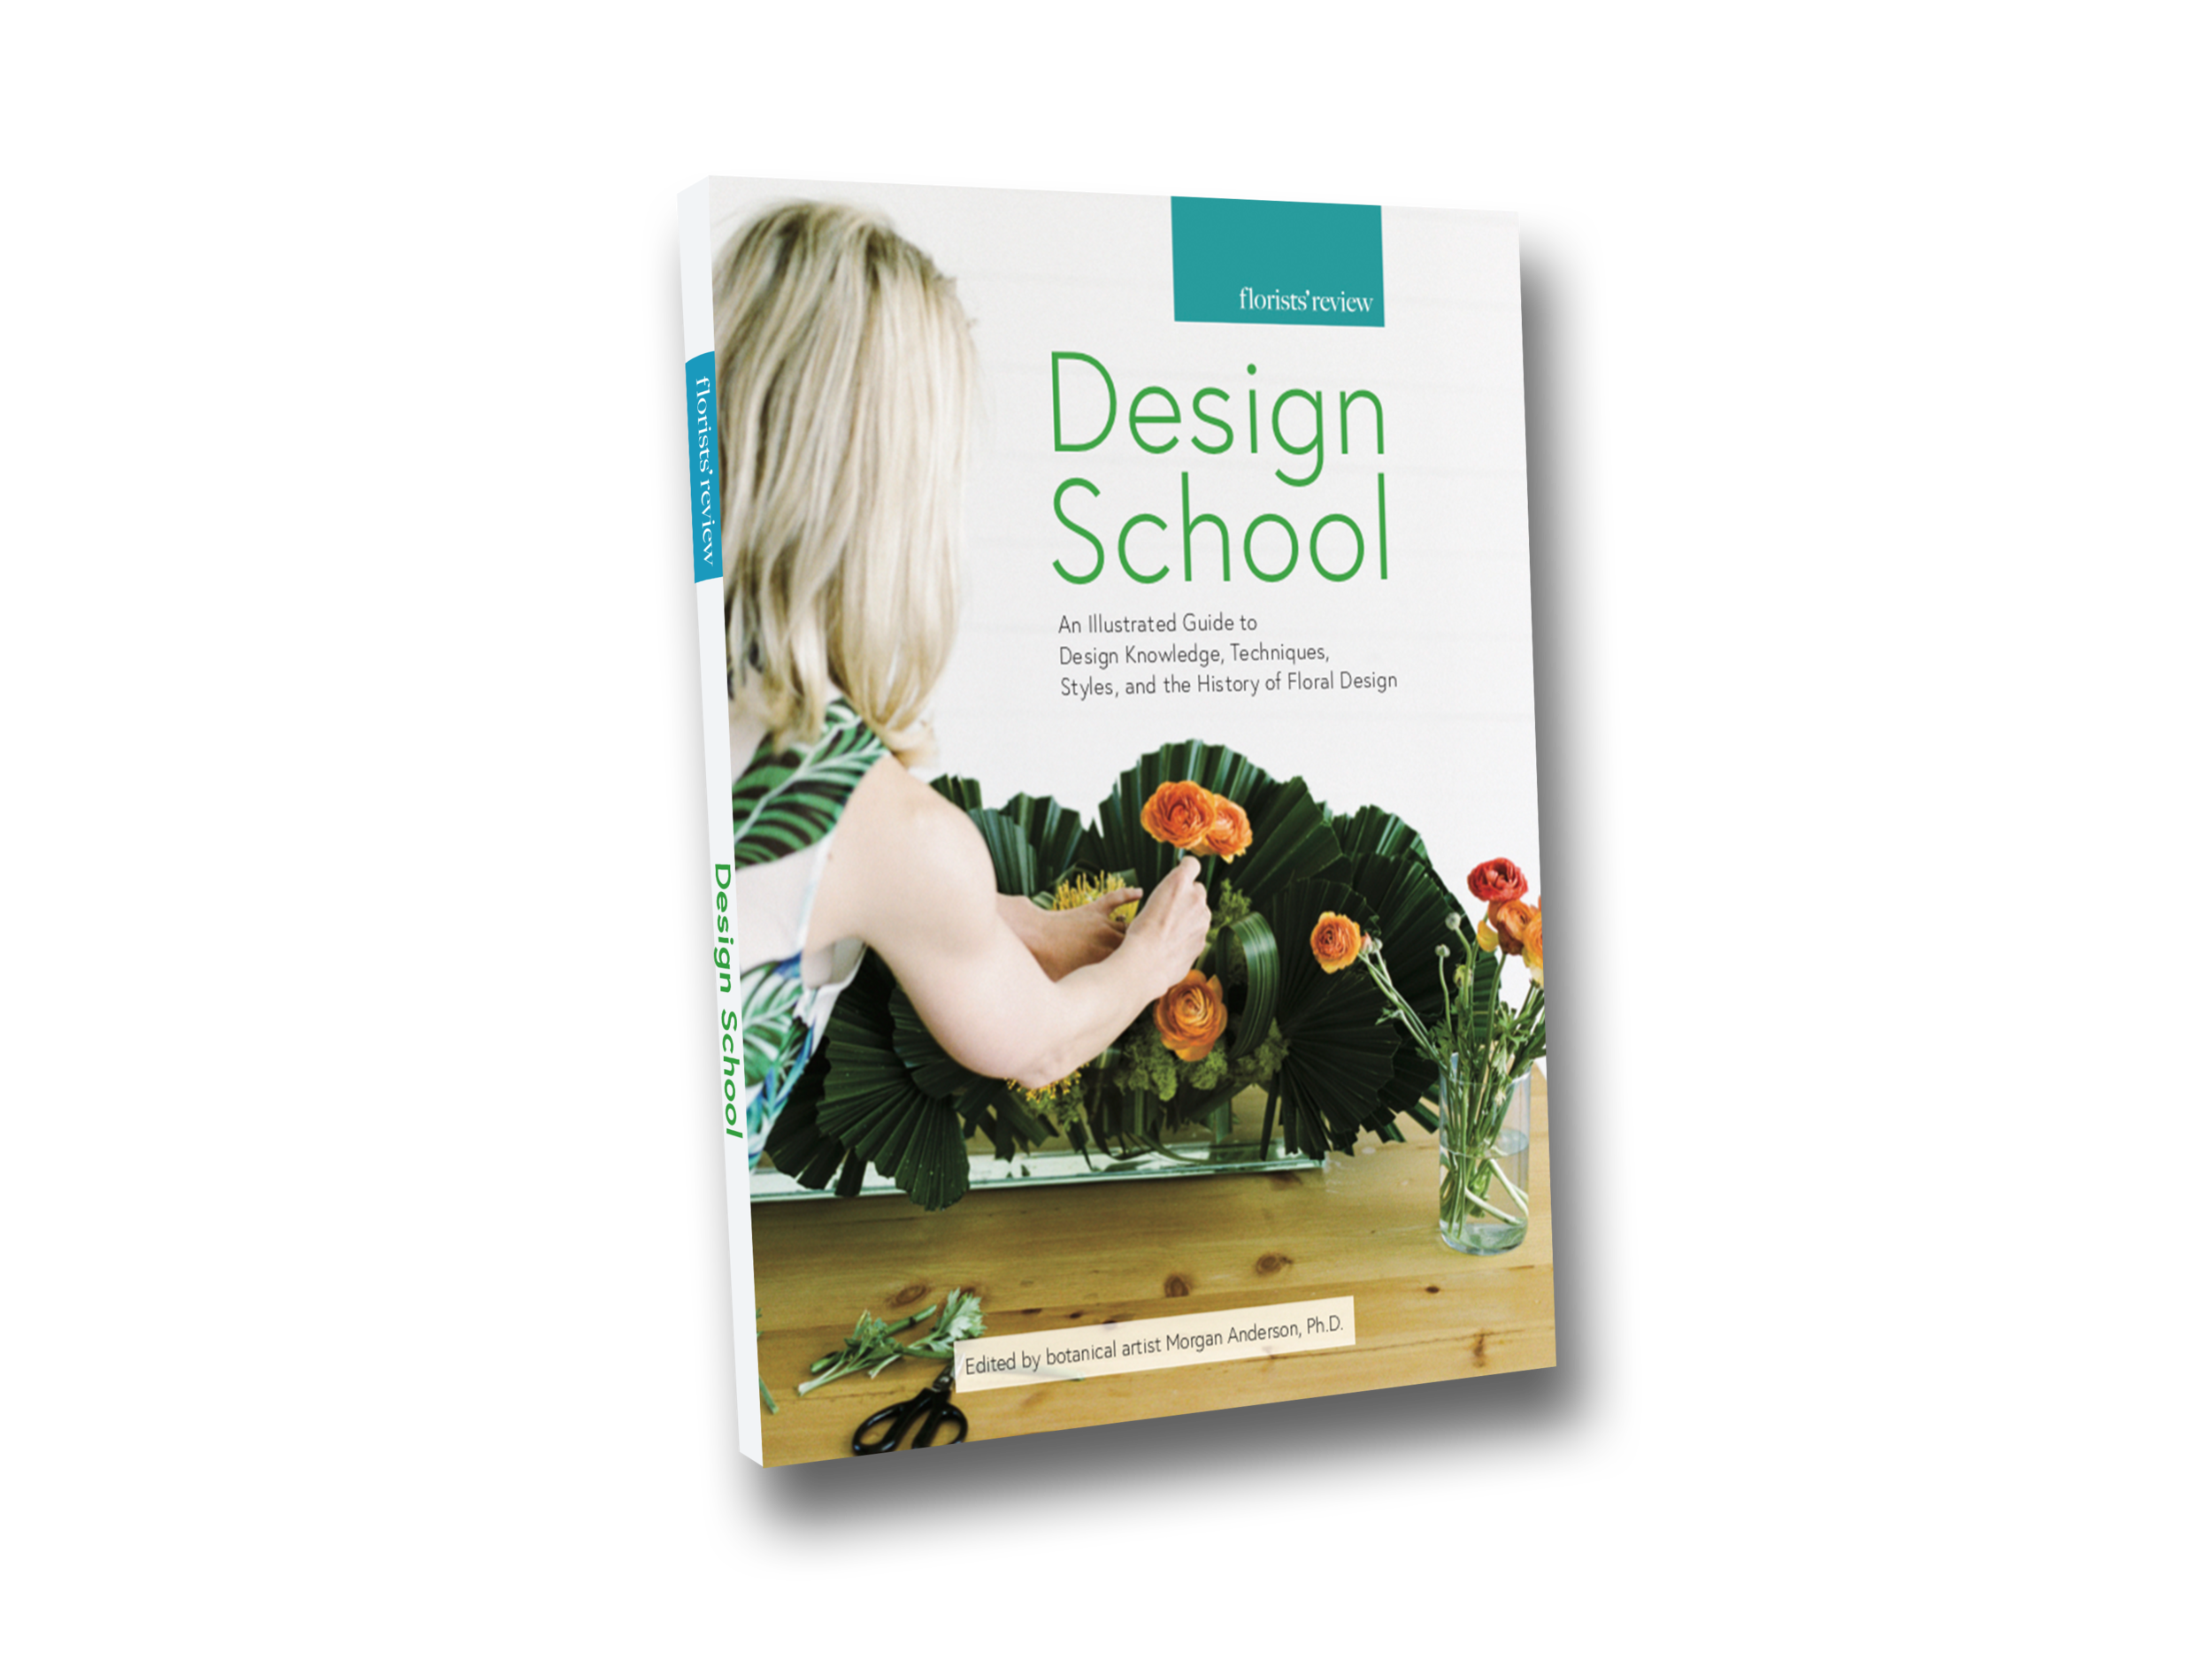 DS-book-mockup.png